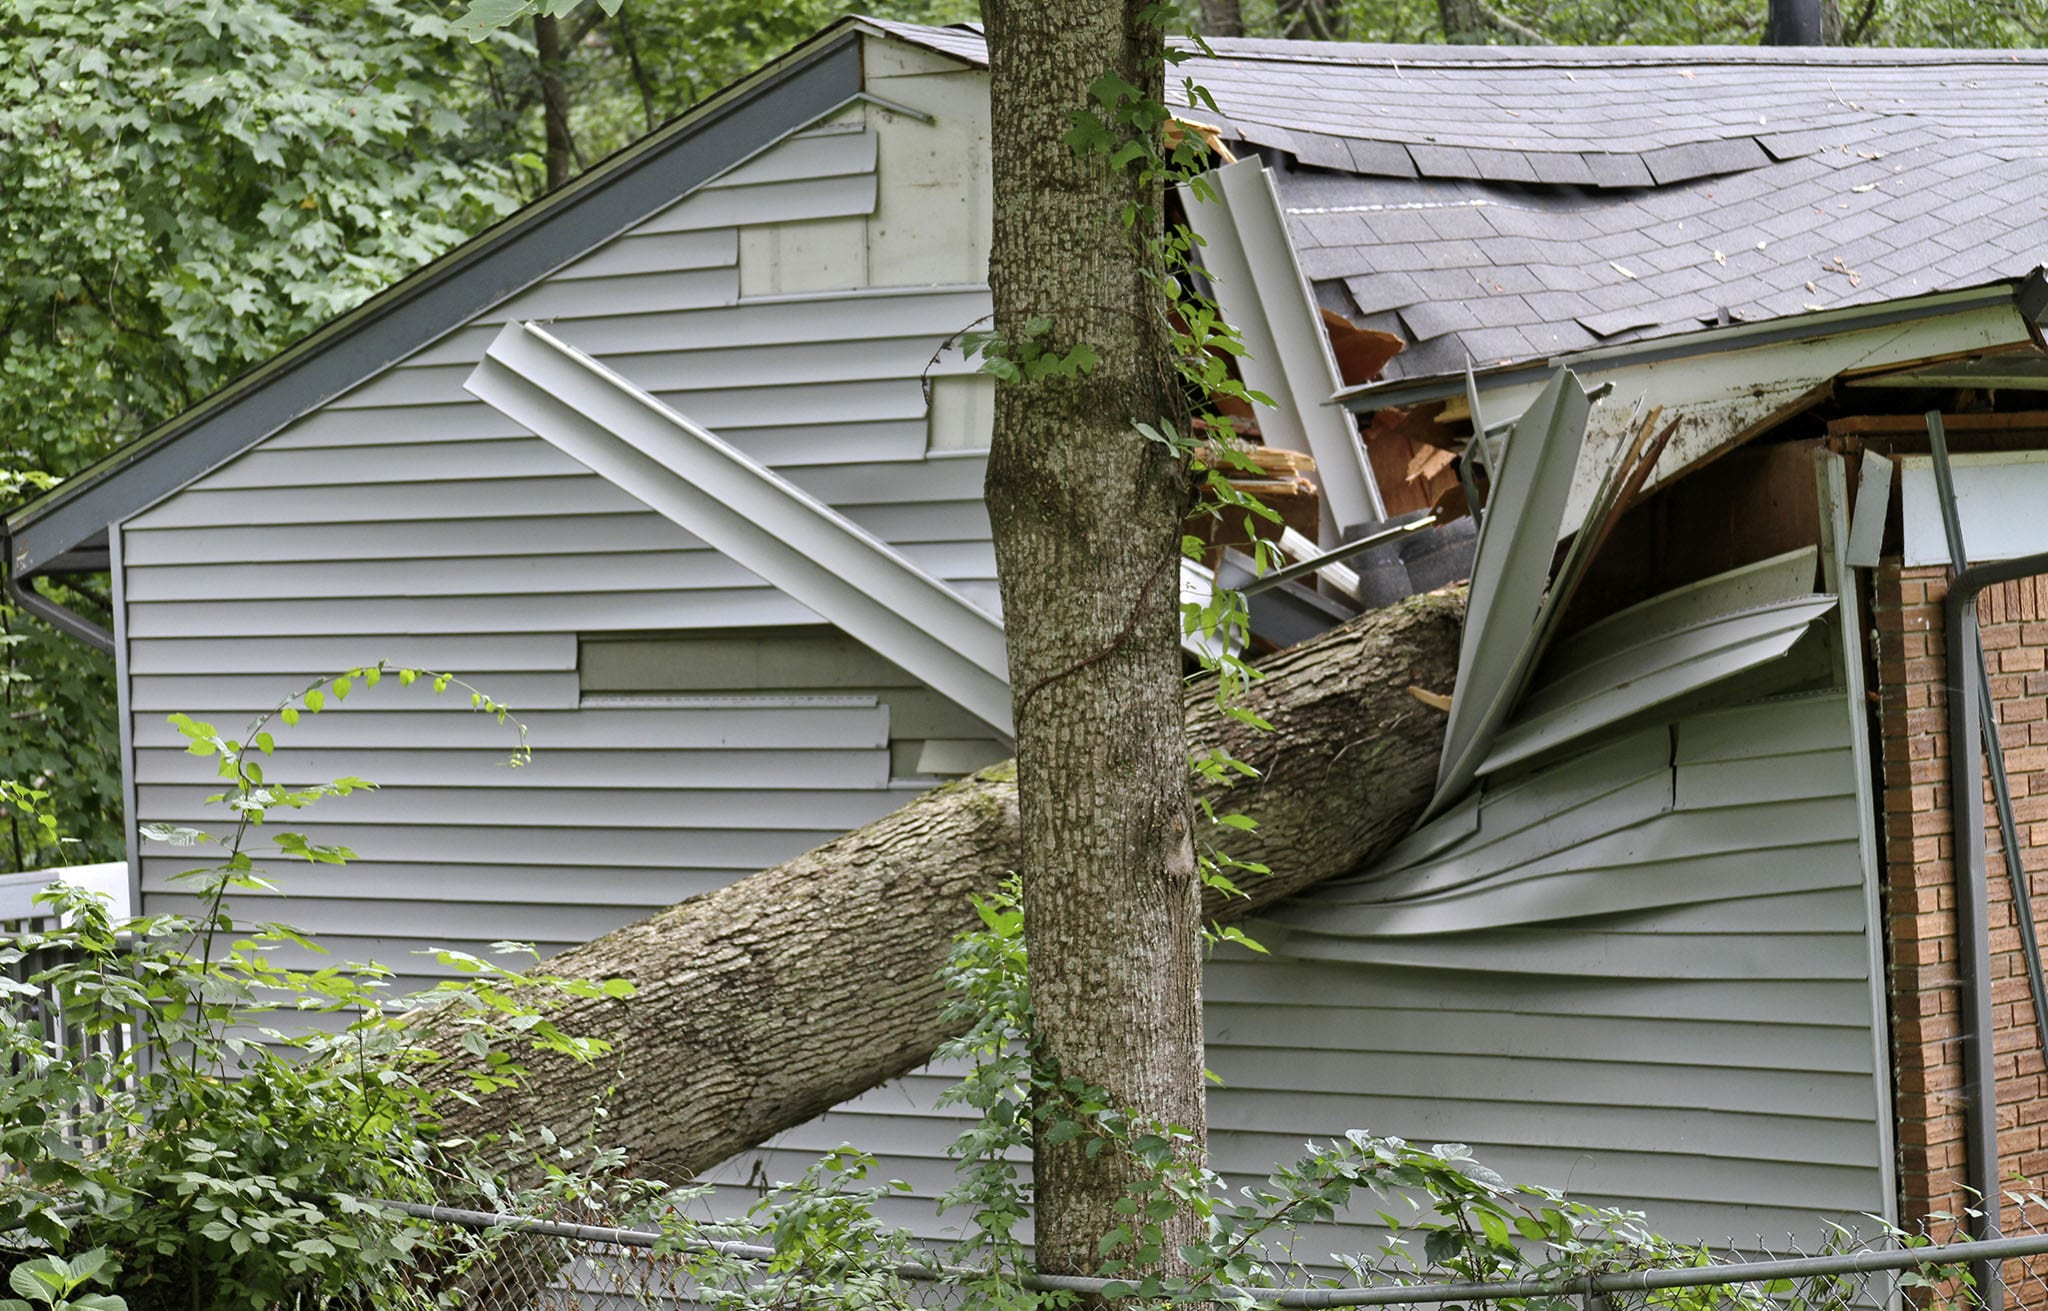 A large tree falls on a home and causes serious roofing, siding and structural damage.